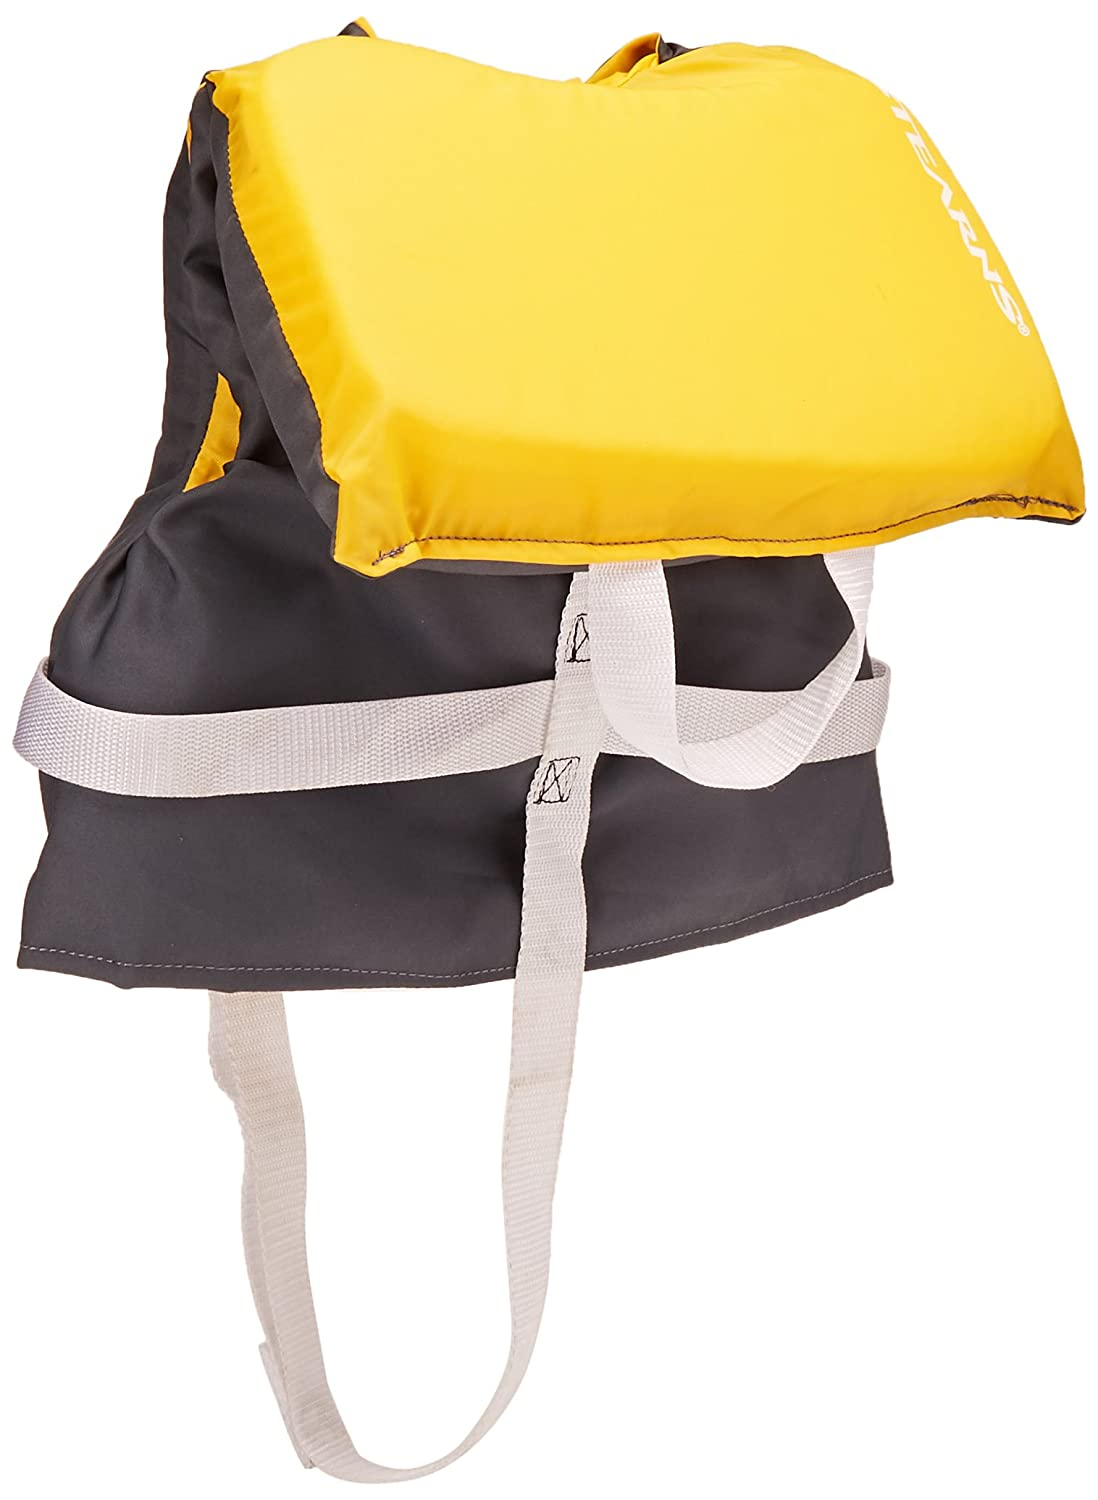 3000002194 Stearns Antimicrobial Nylon Classic Series Personal Floatation Device Stearns Classic Series Infant Vest Sportsman Supply Inc